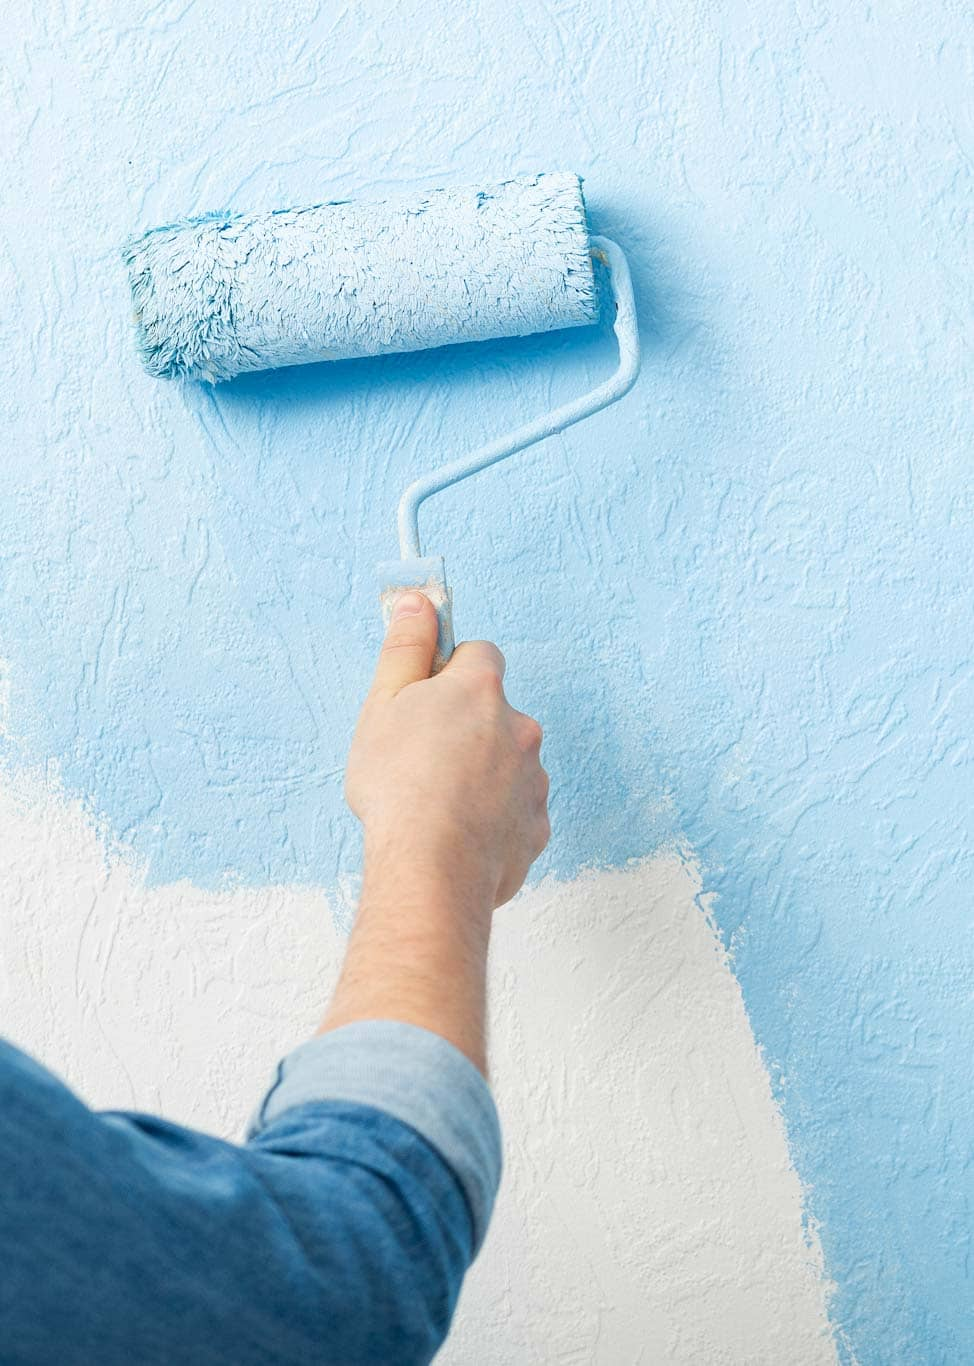 Painting Services in Singapore